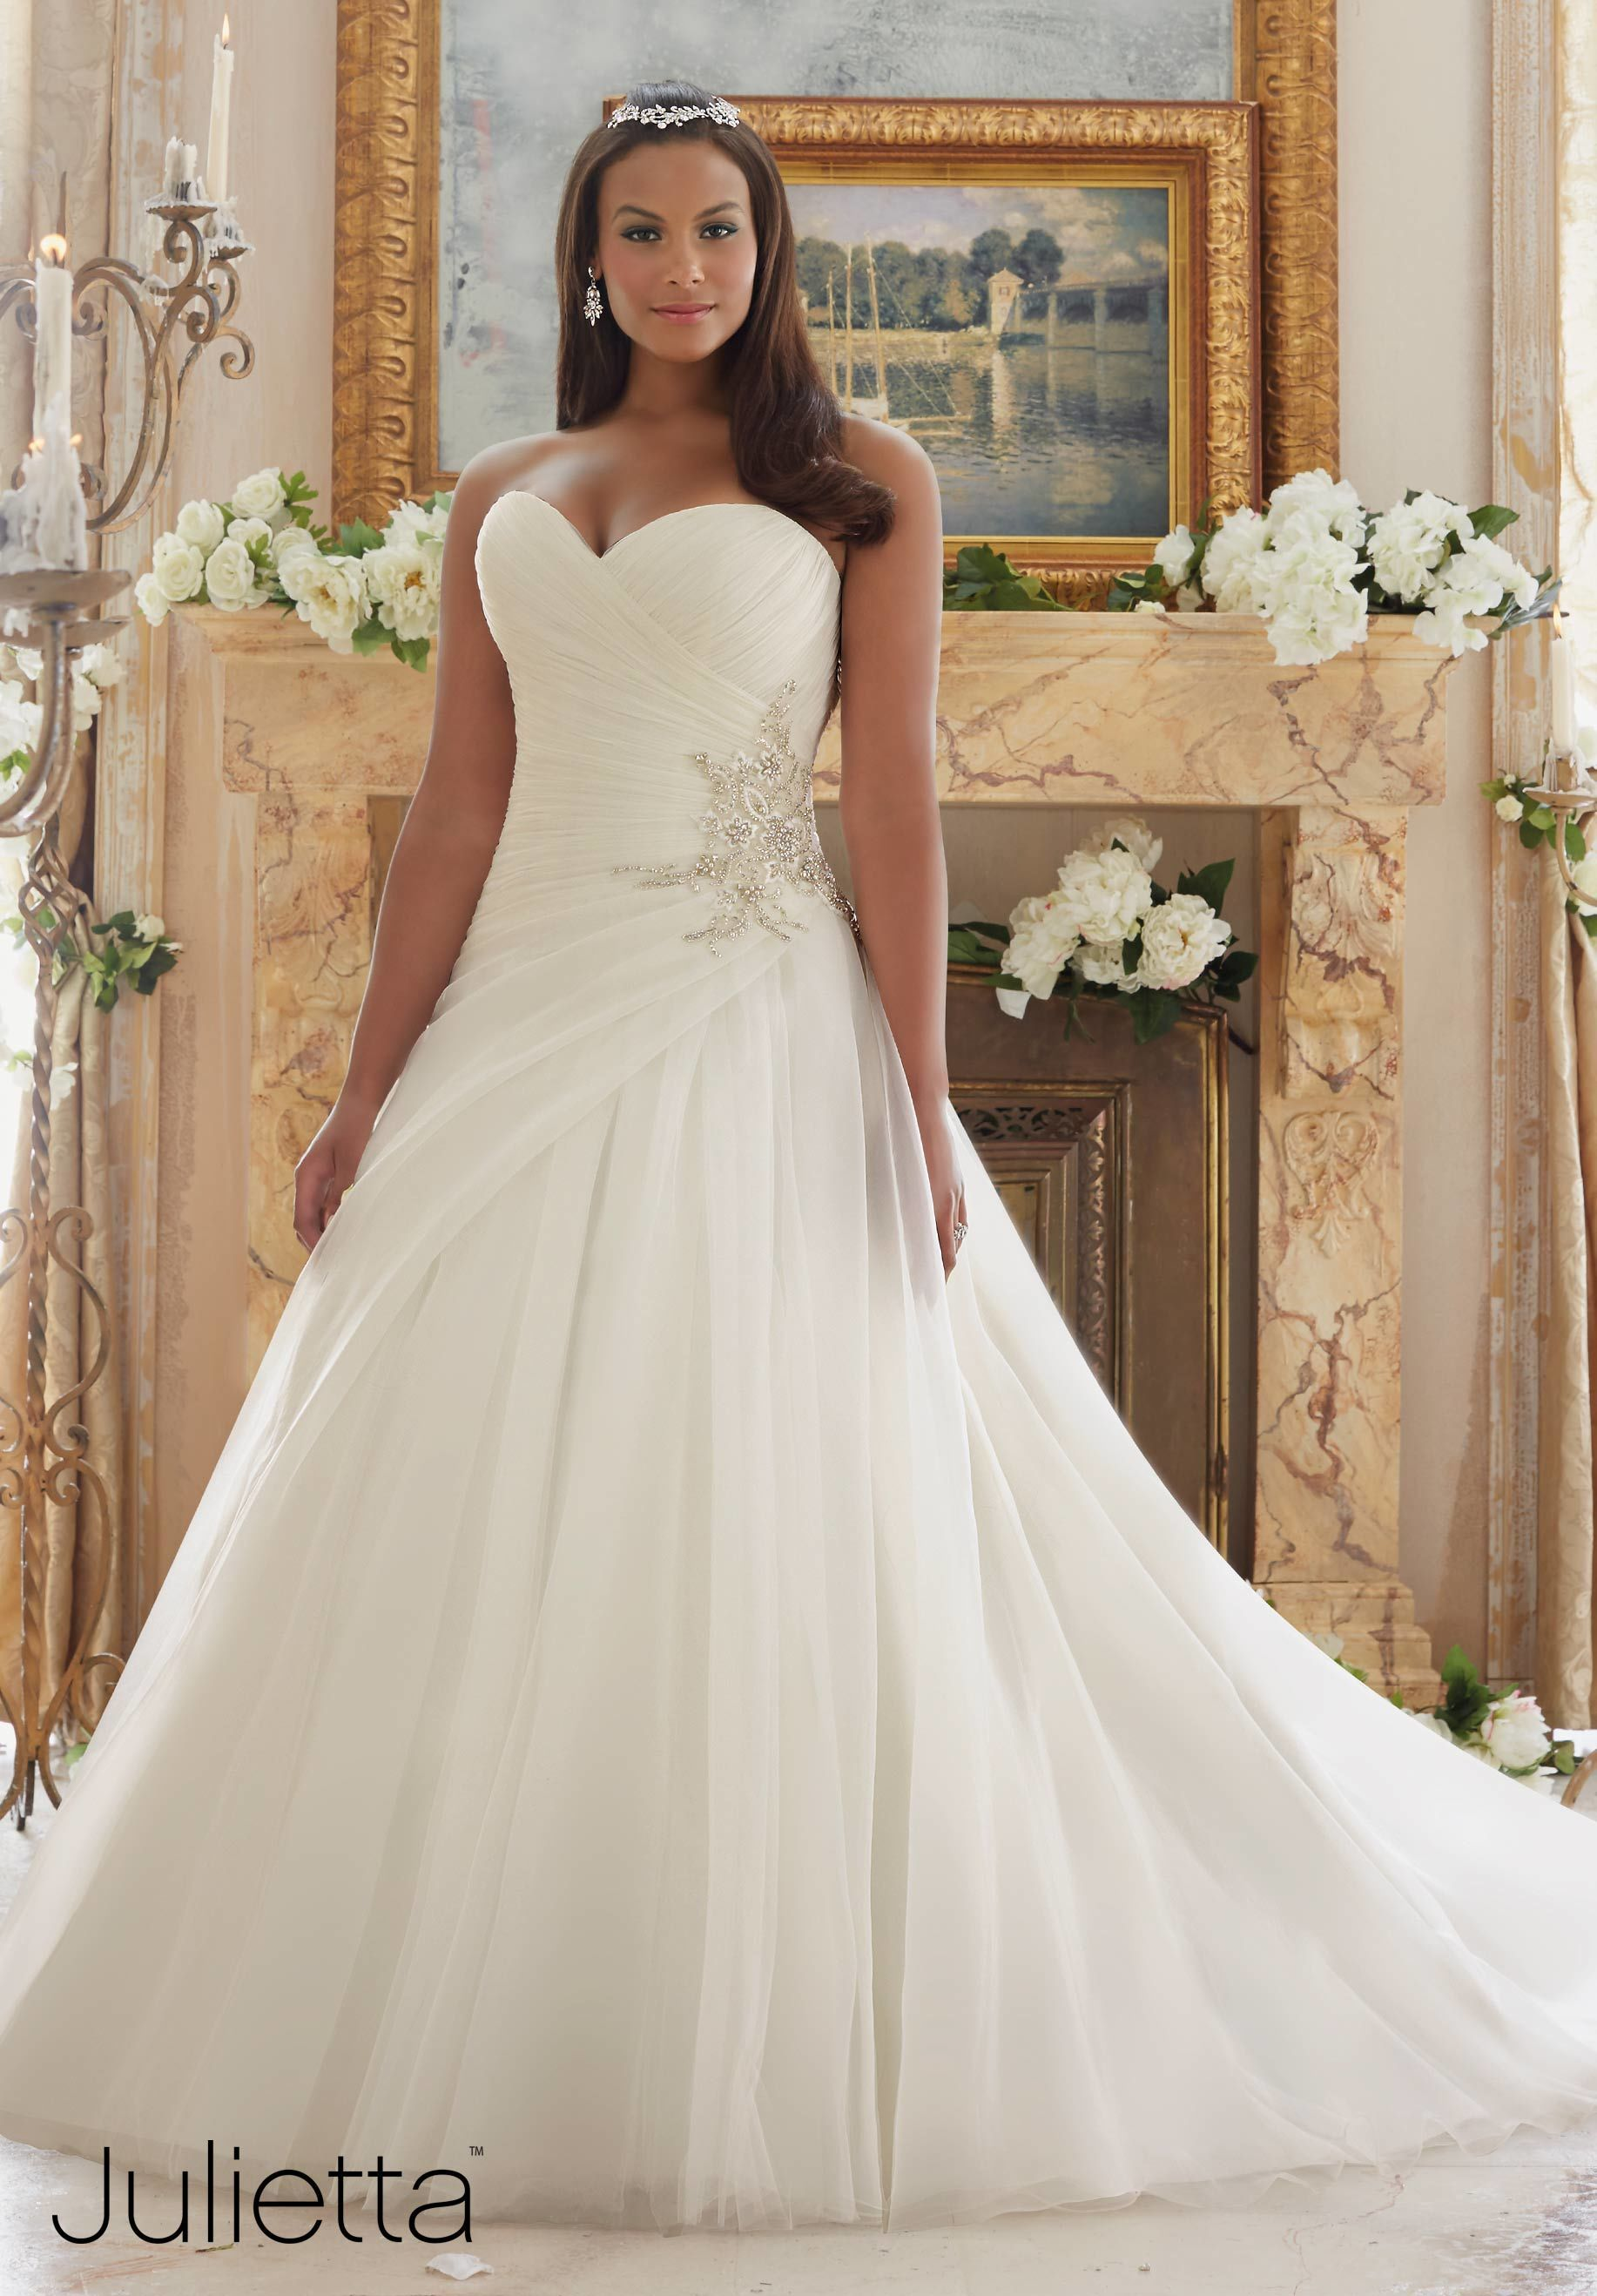 Wedding dresses for curvy women for Women s dresses for weddings